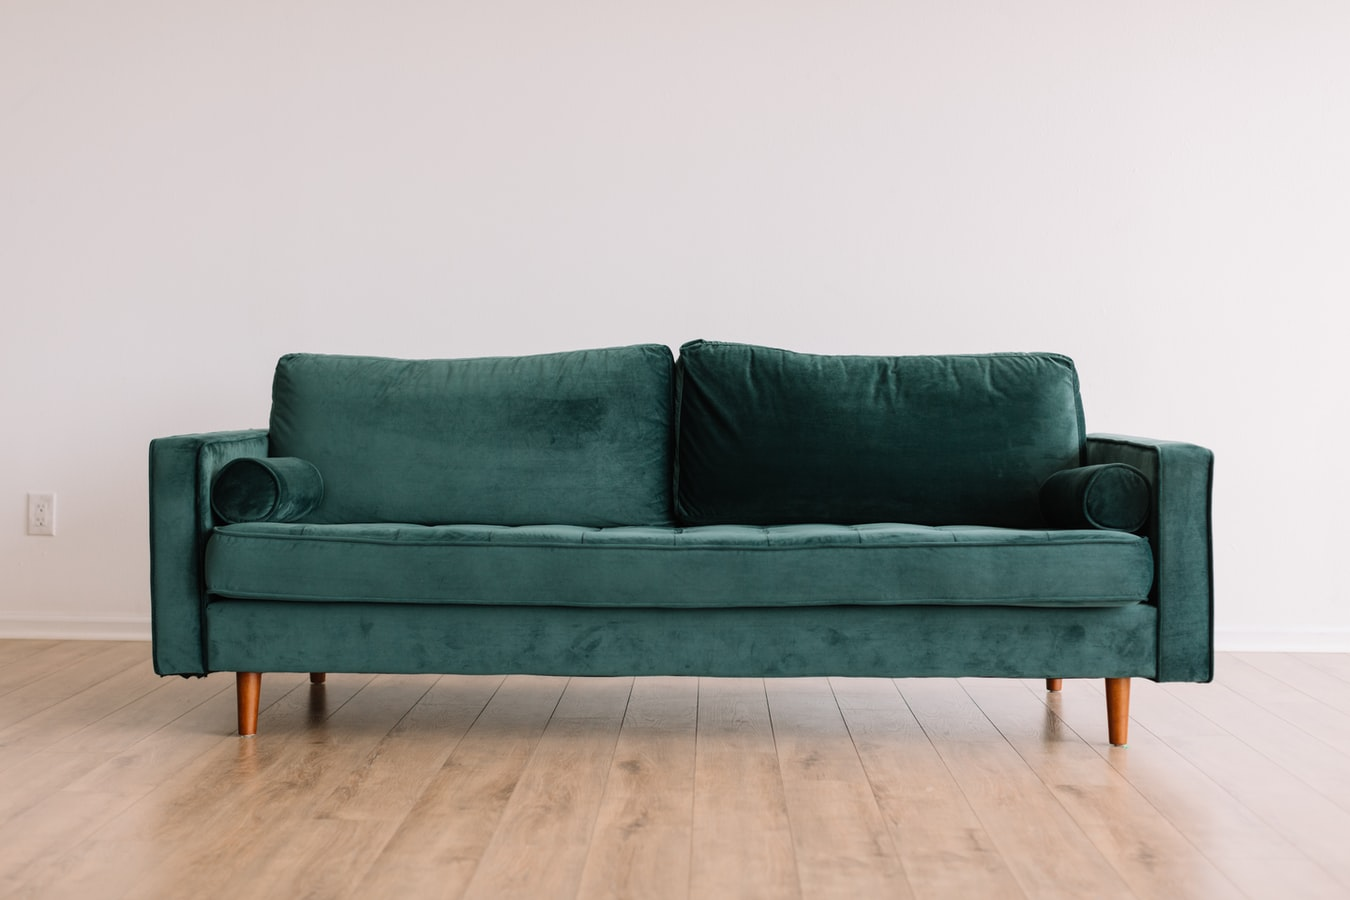 A couch - moving your furniture long distance is easy if you know how to do it properly